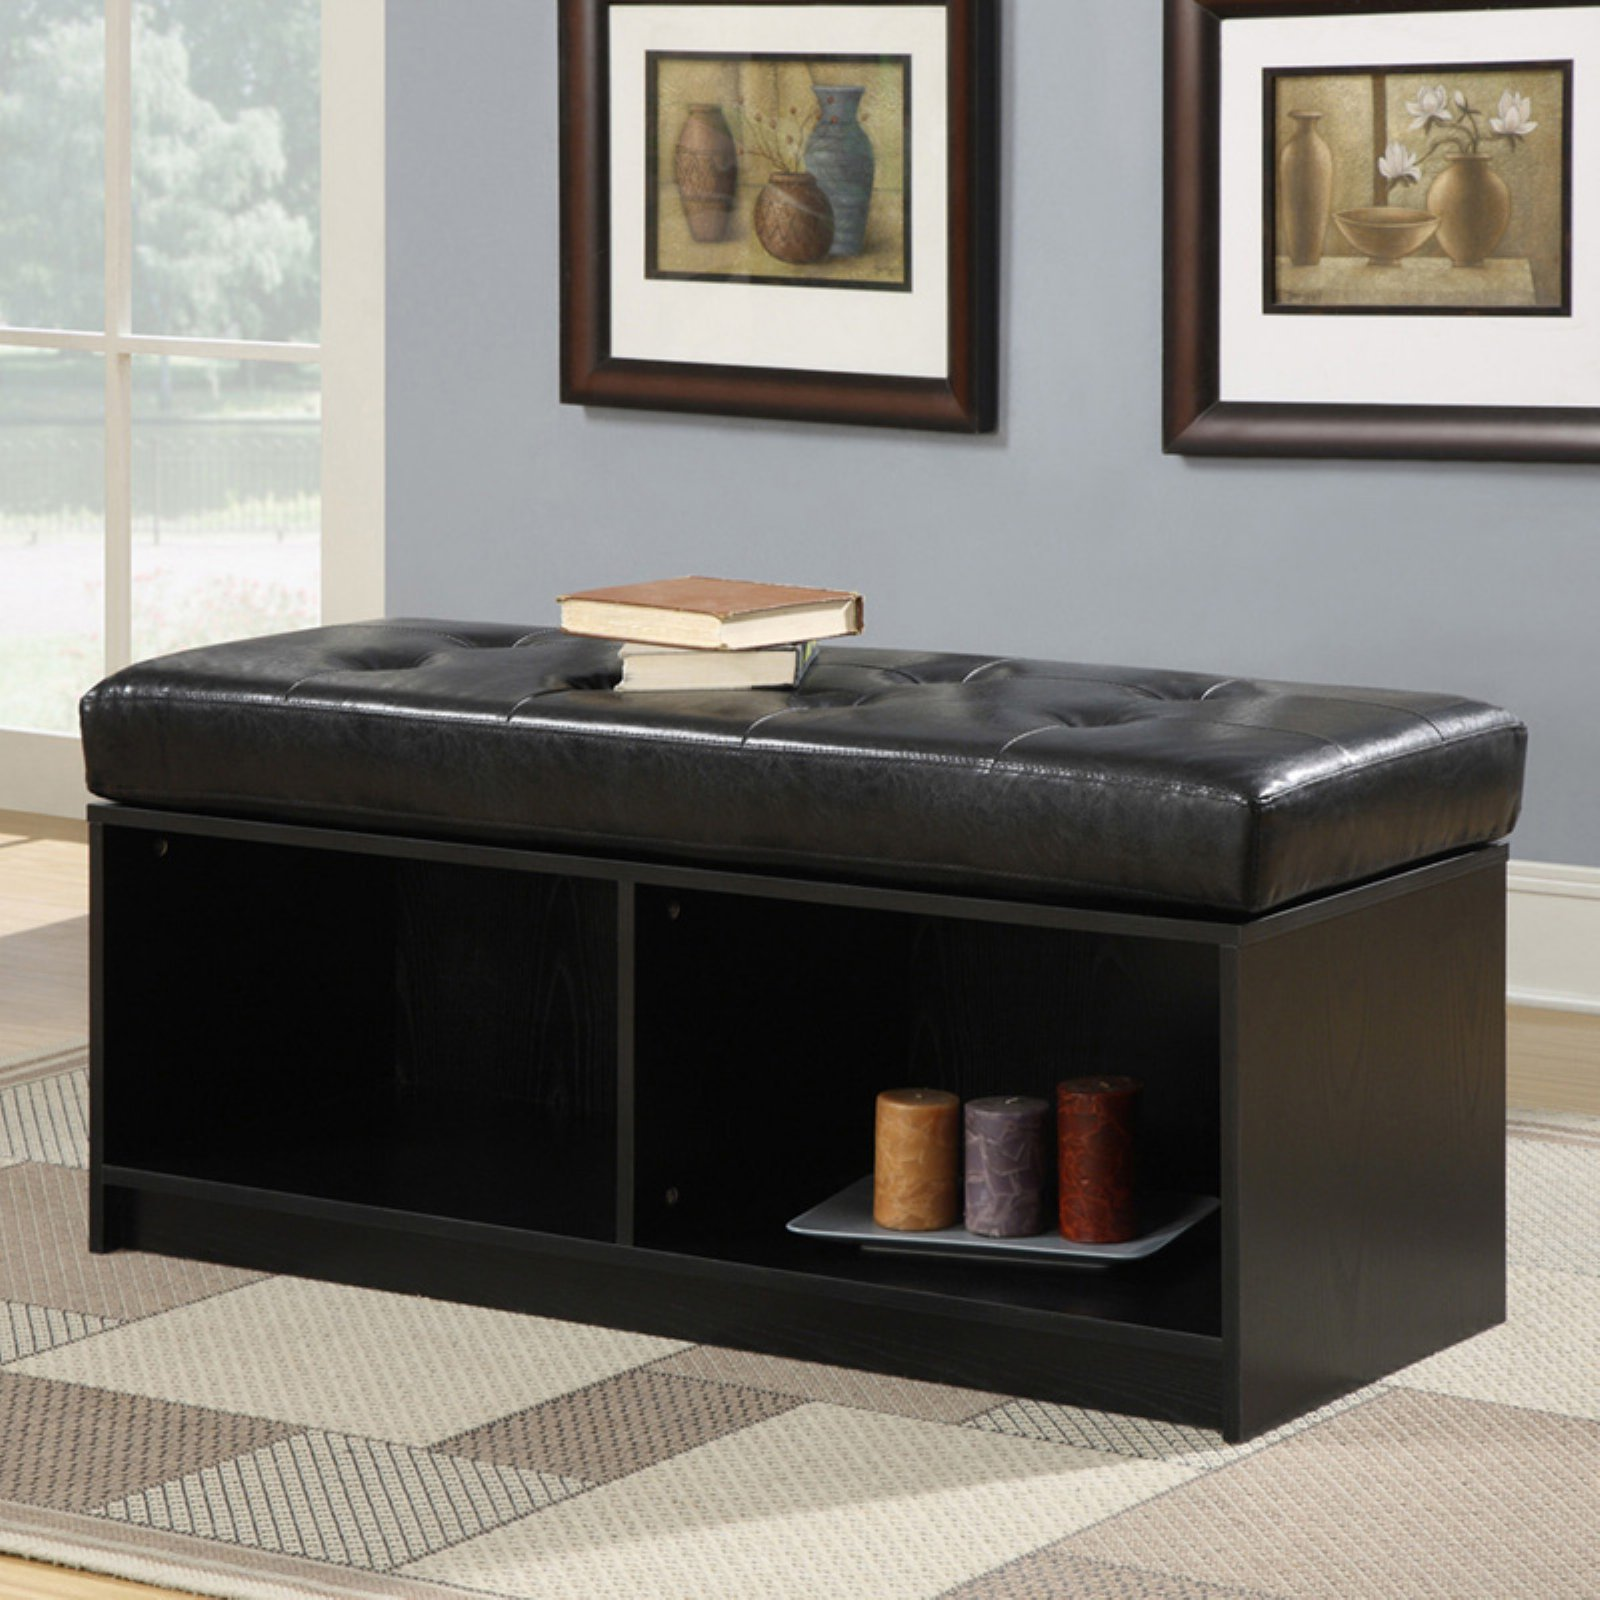 Convenience Concepts Designs4Comfort Broadmoor Entryway Faux Leather Bench Storage Ottoman, Multiple Colors by Convenience Concepts